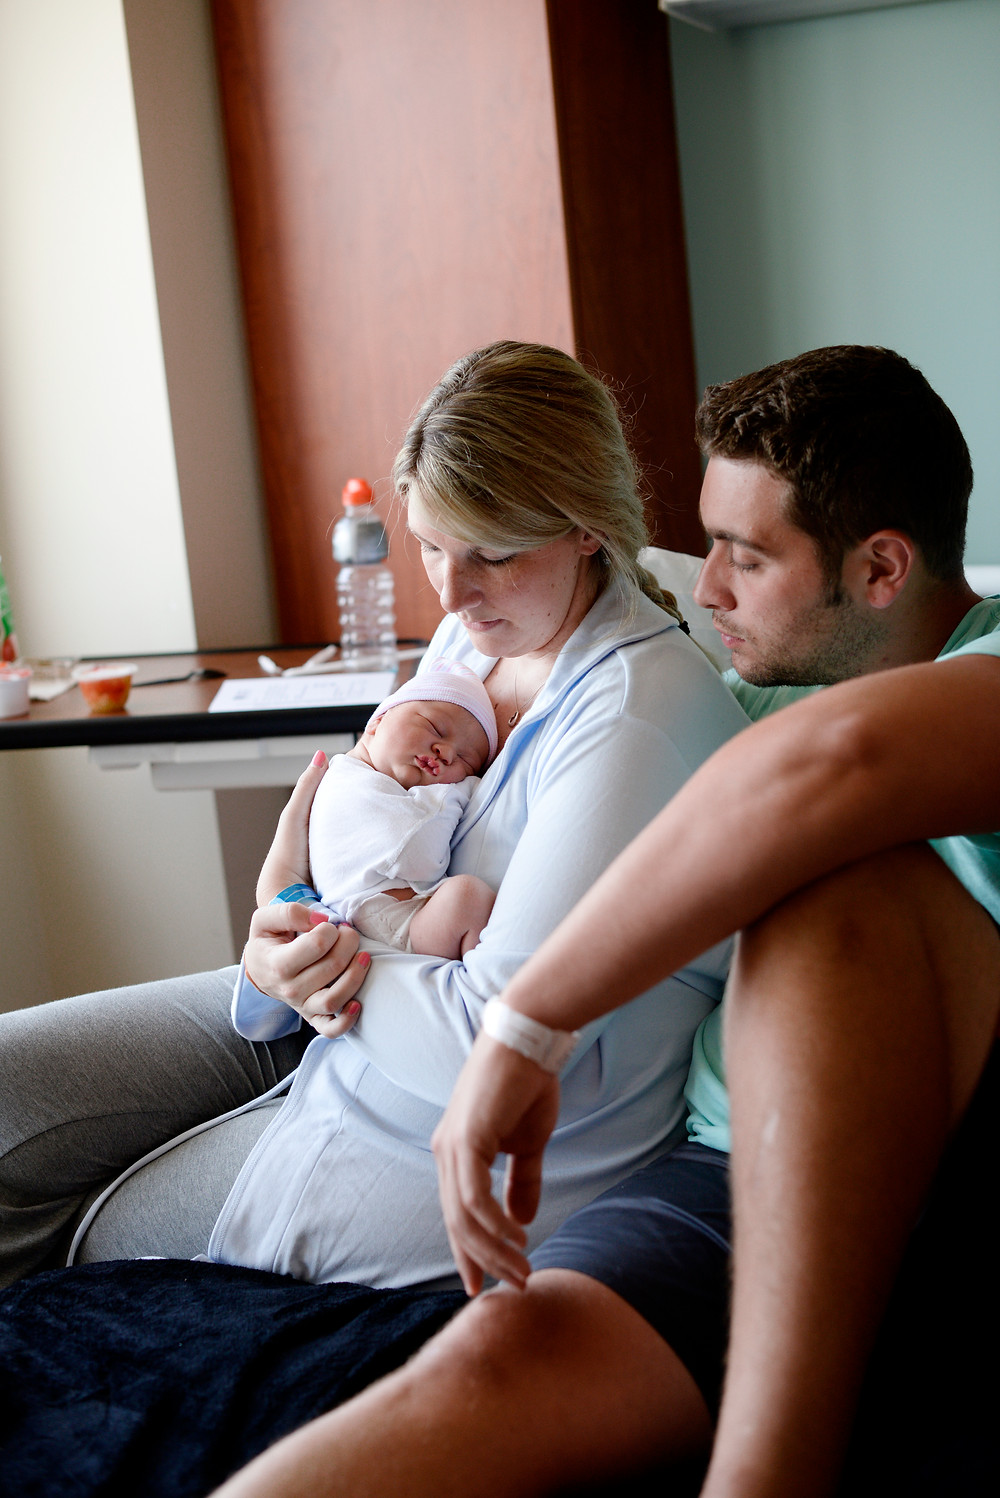 new mom and dad loving new baby boy in hospital bed